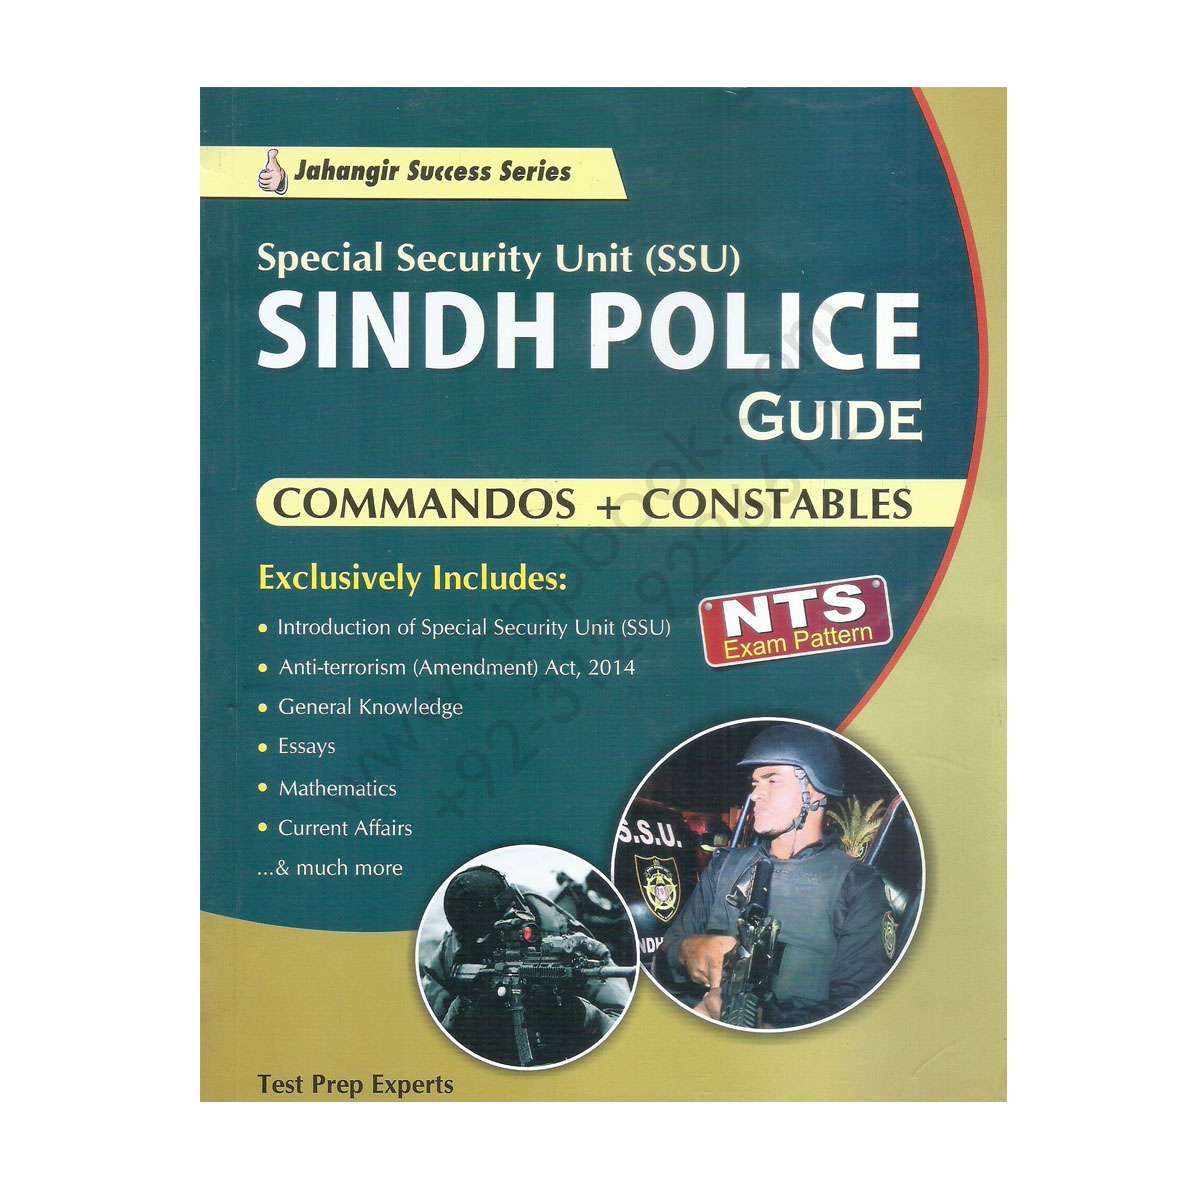 SSU Sindh Police Guide Commandos Constable By Jahangir Books